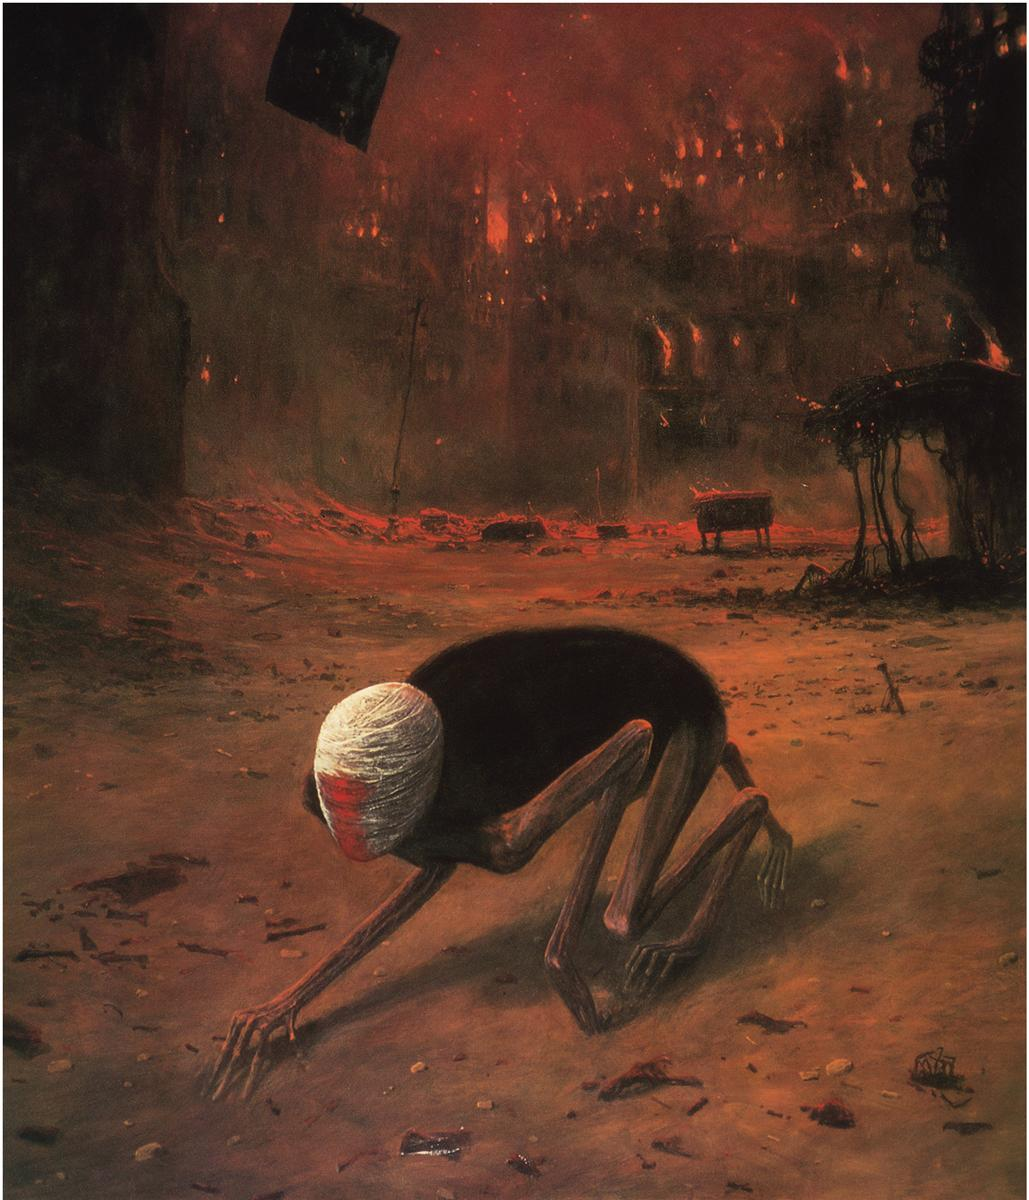 Untitled by Zdislav Beksinski